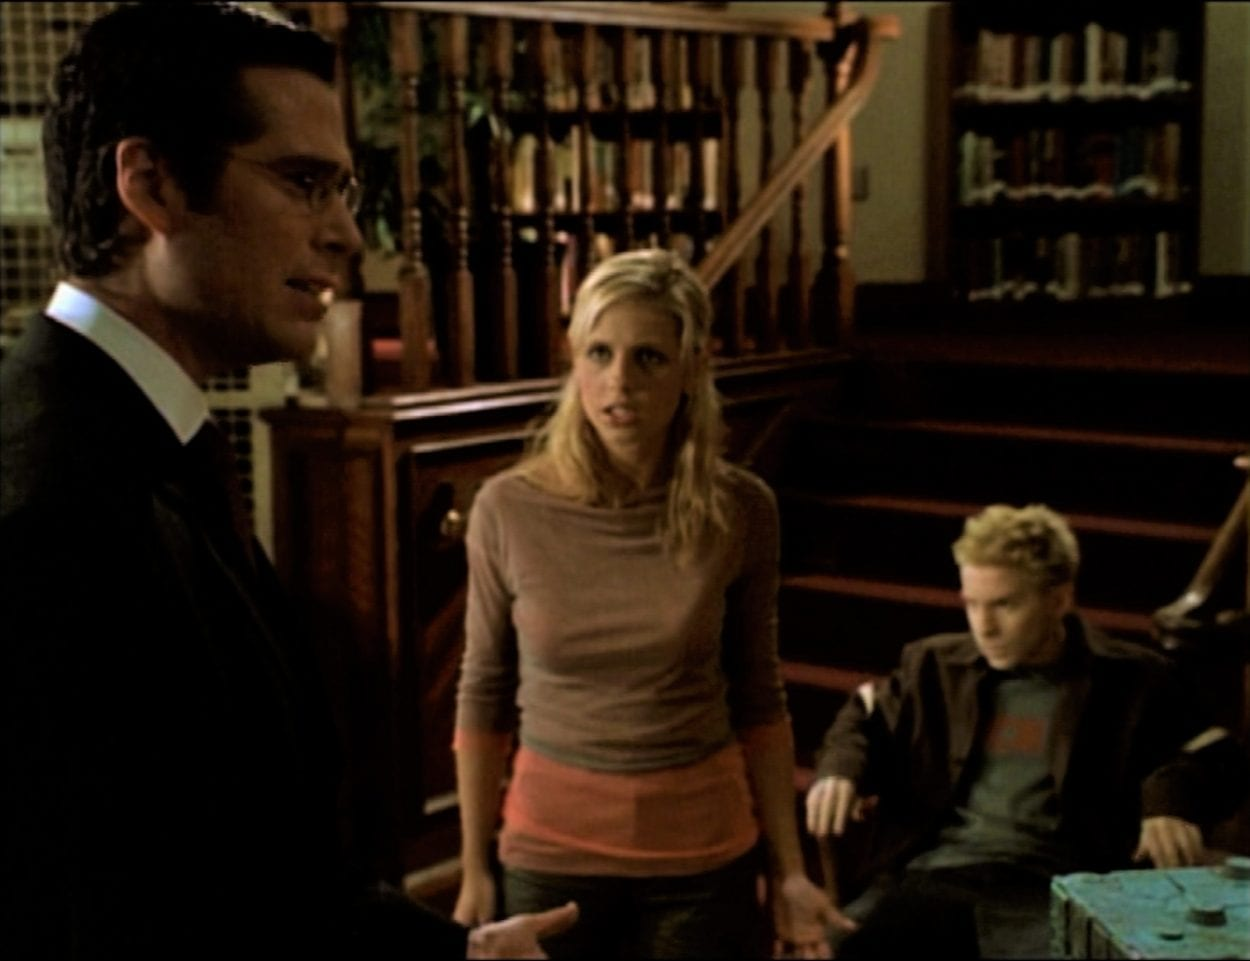 Wesley and Buffy are arguing in the library, while Oz sits in the background